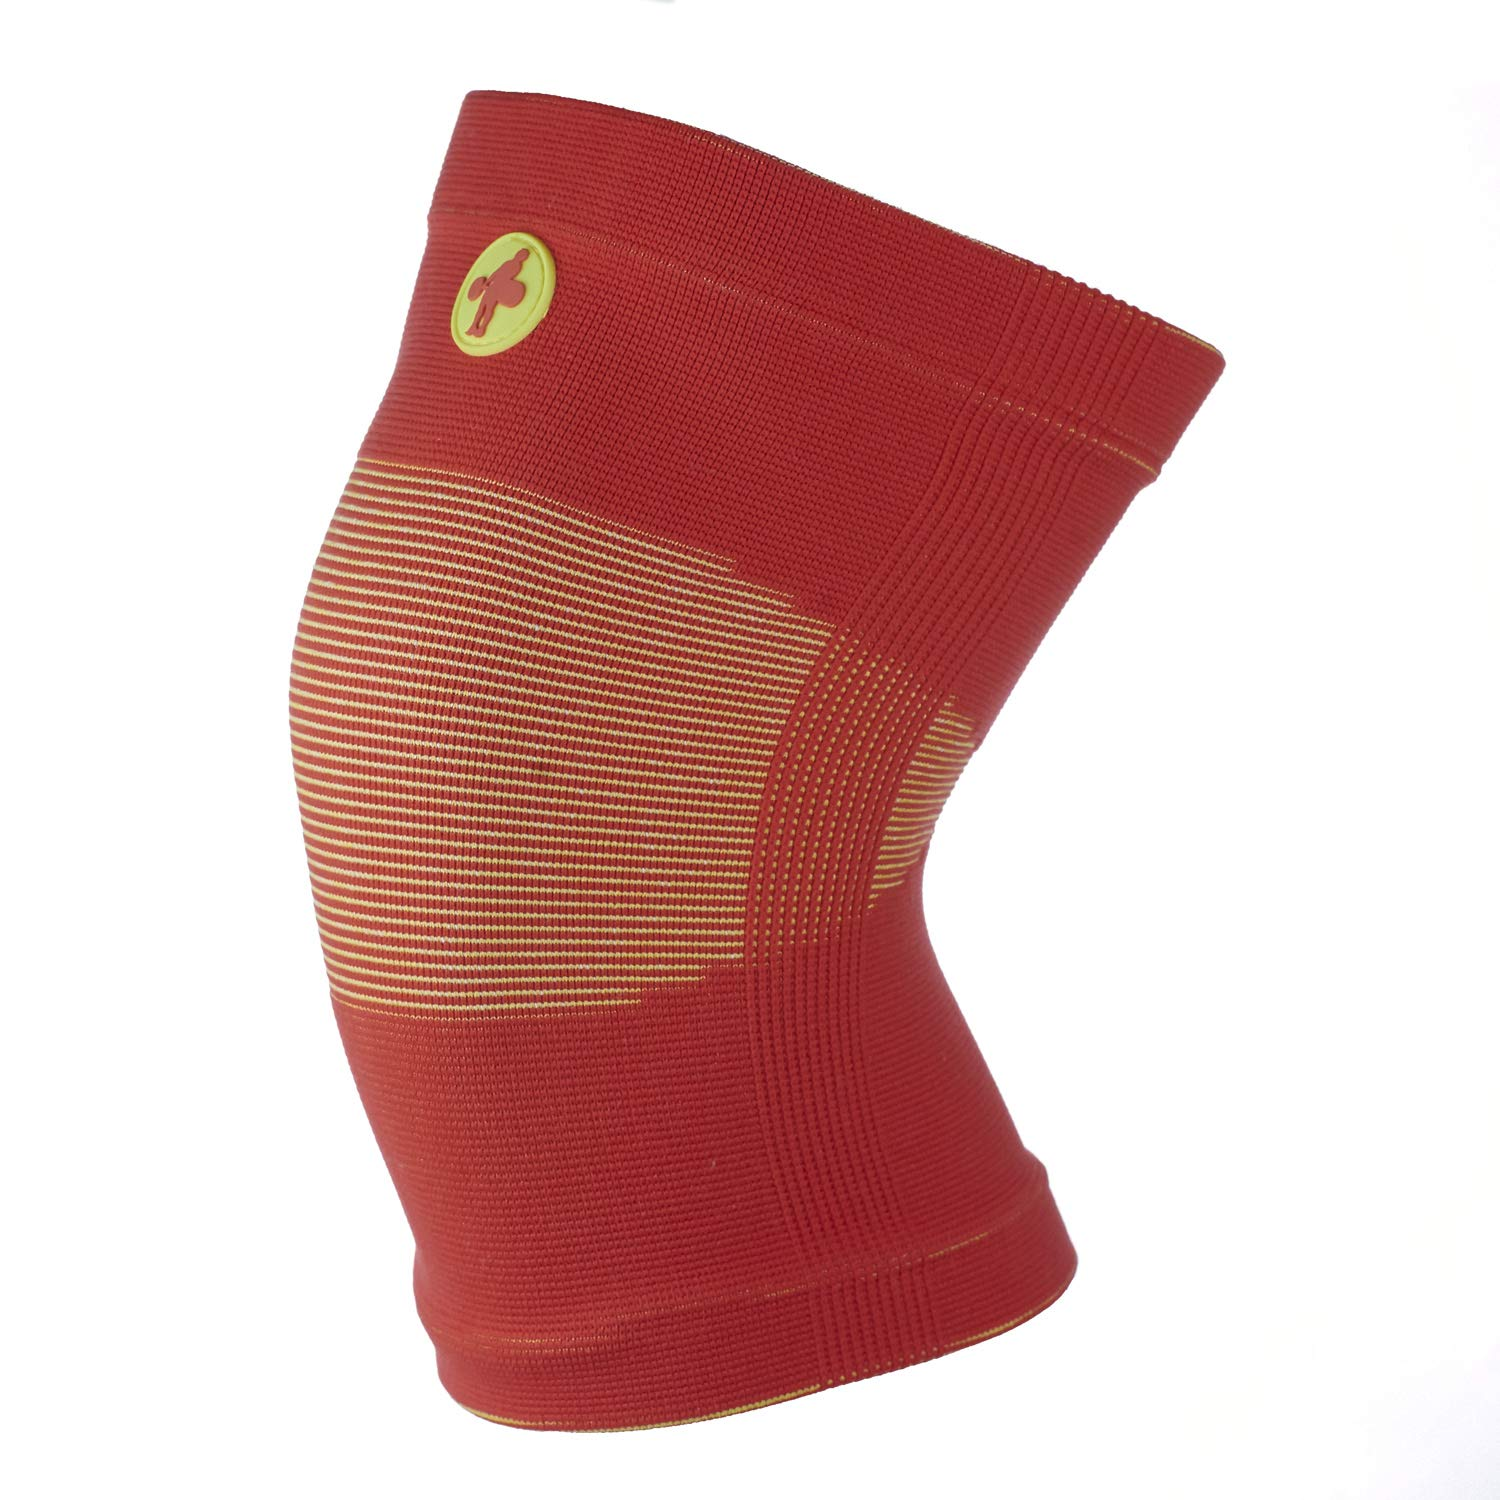 Knee Sleeves for Weightlifting, Crossfit, Chinese Style (Red and Yellow, Large)